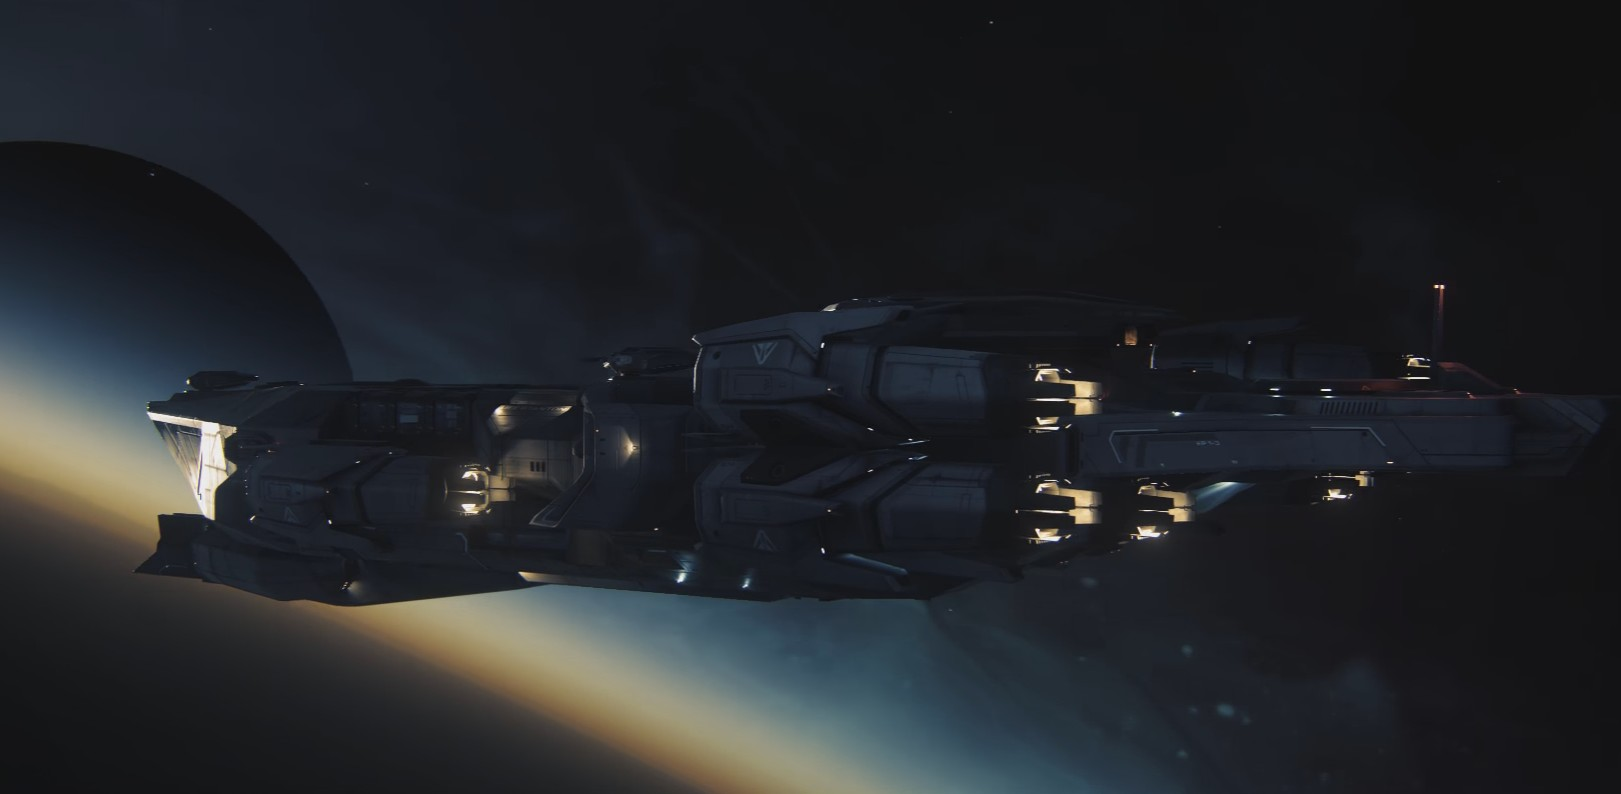 New Star Citizen Trailers And Videos Shows Massive Capital Ships Star Marine FPS Gameplay And More